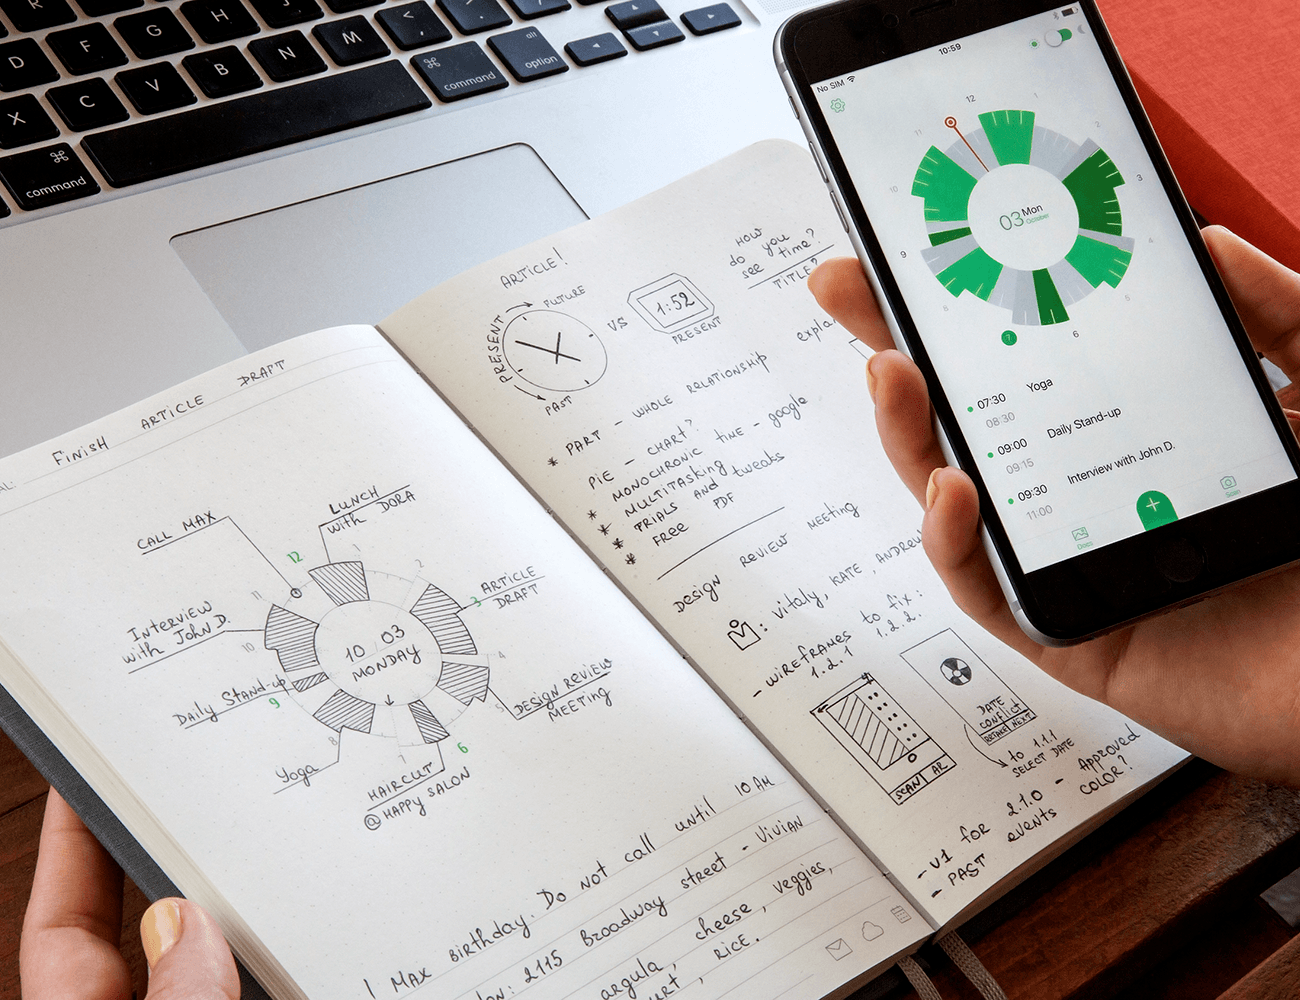 Slice Planner  First Notebook Connected to Digital Calendars - Technology Updats